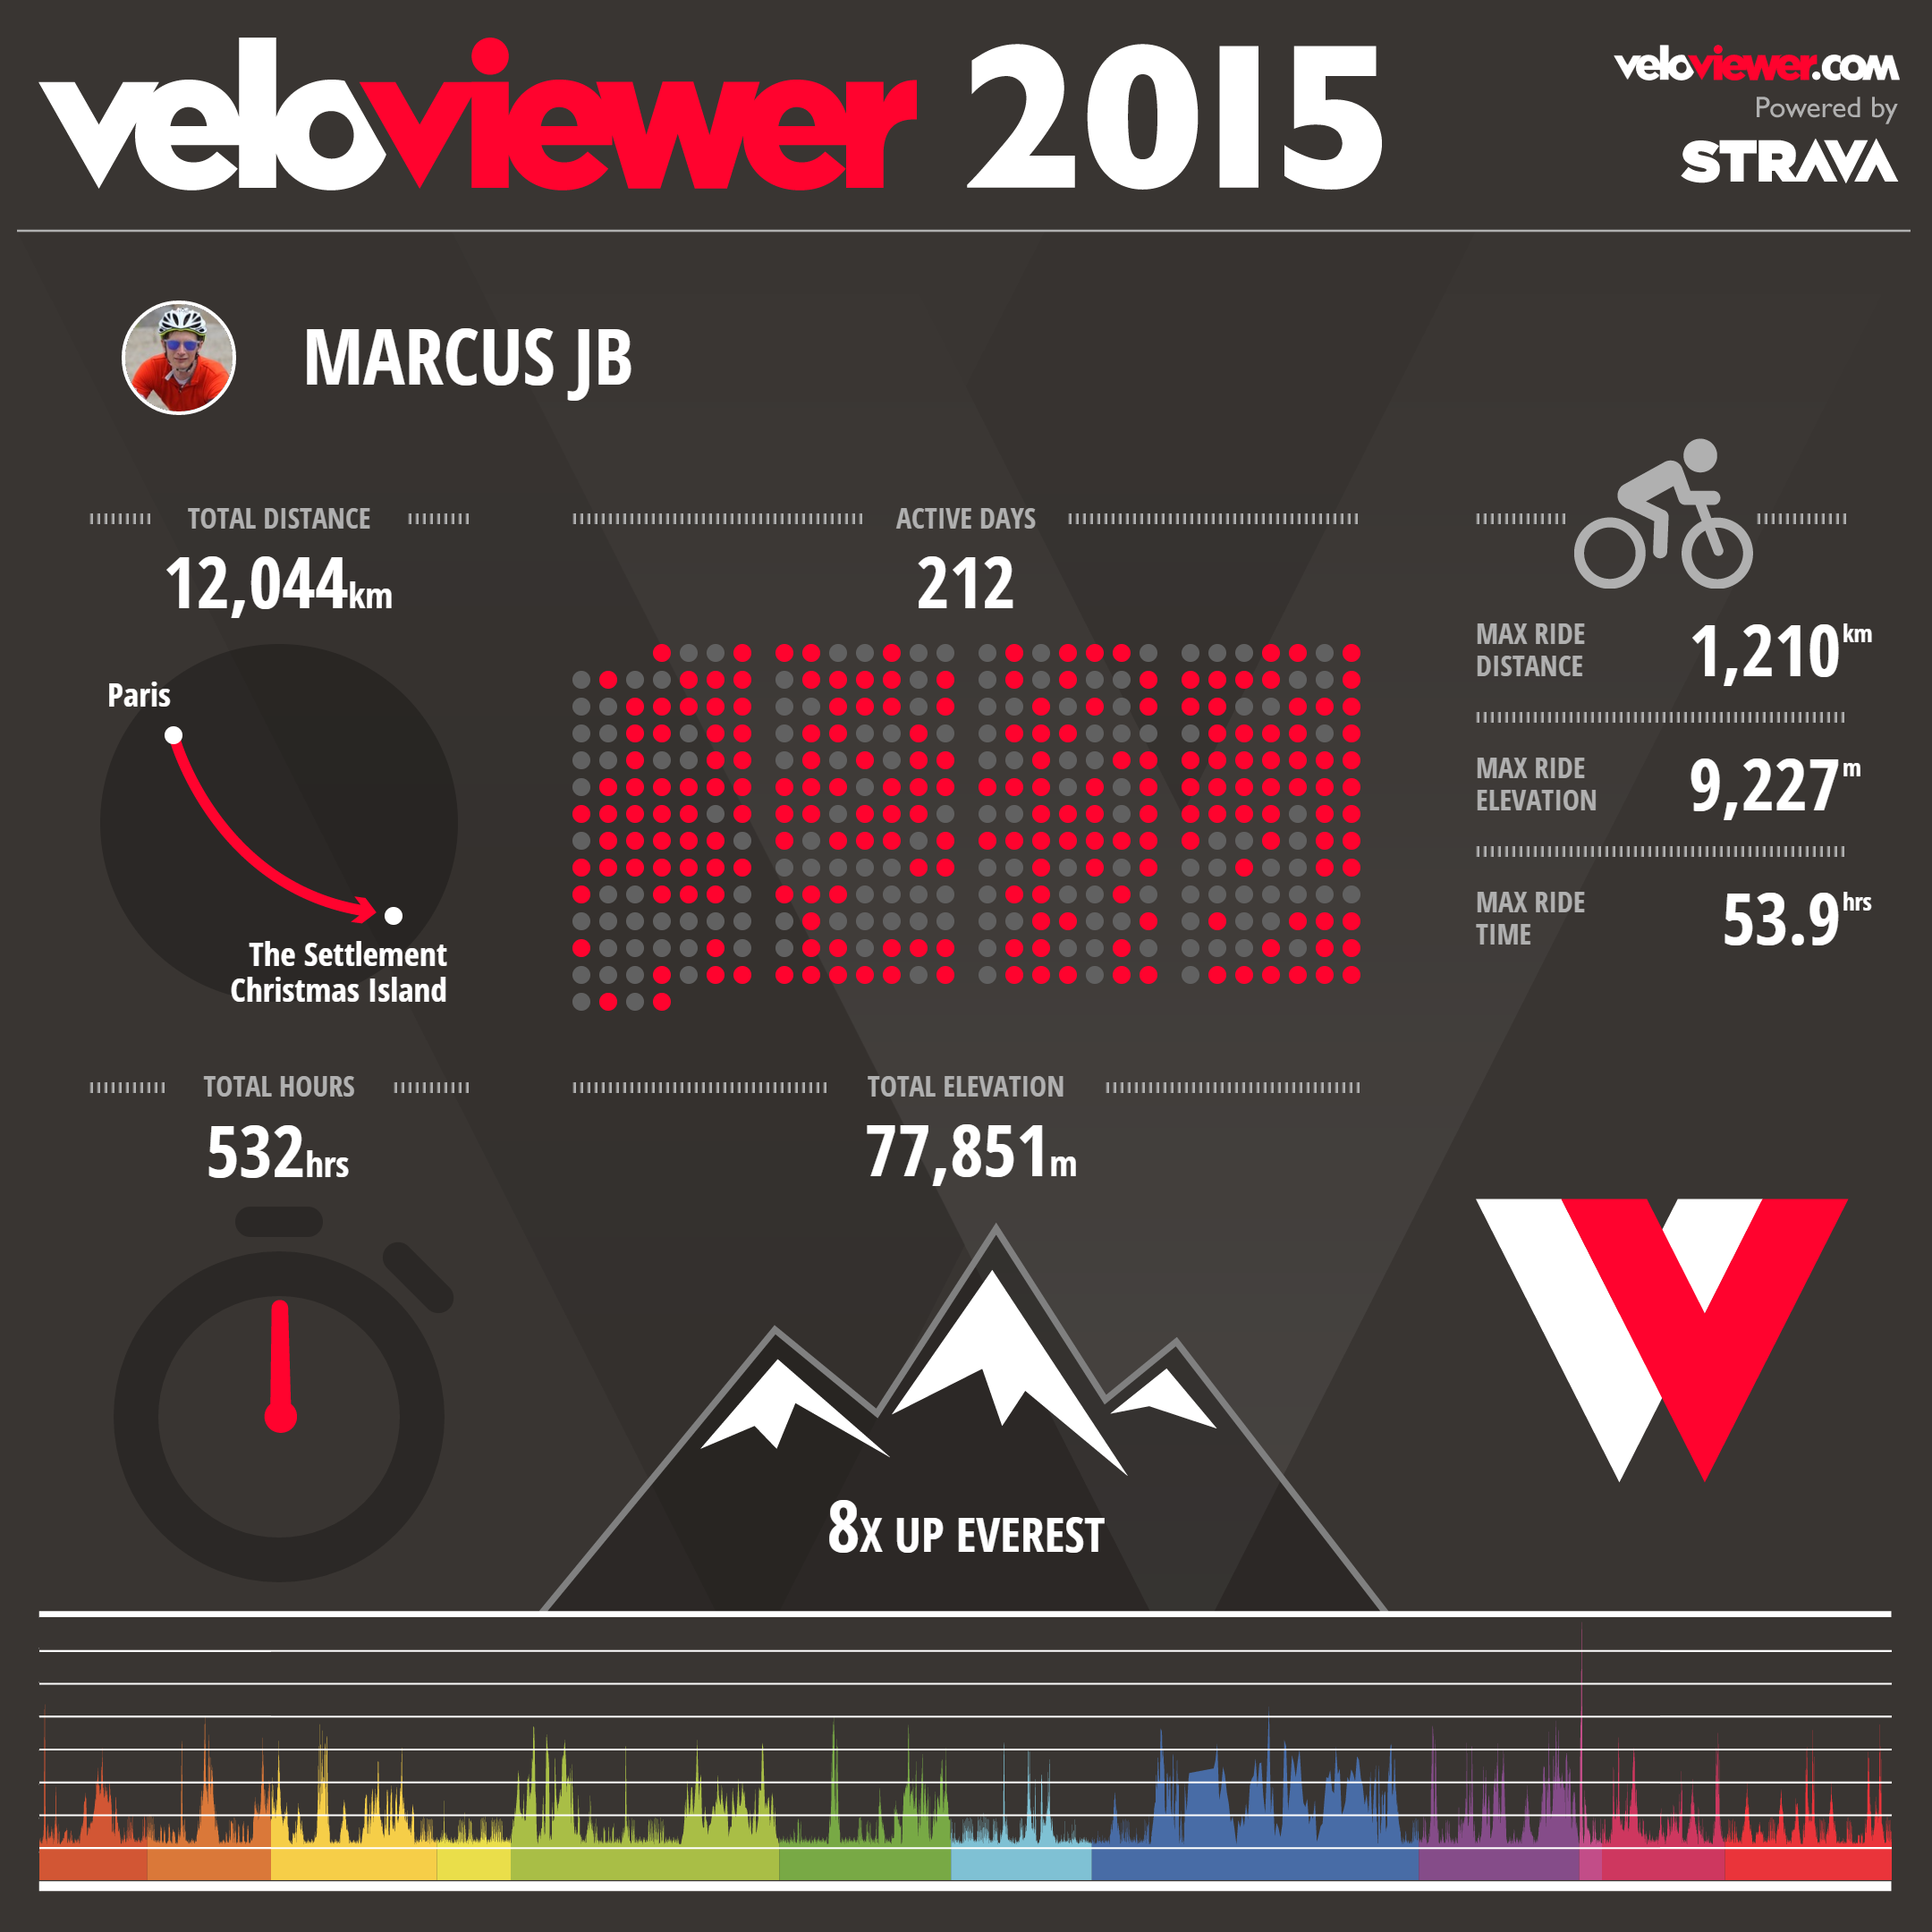 Go to  www.veloviewer.com  for lots of analysis tools on Strava data etc.